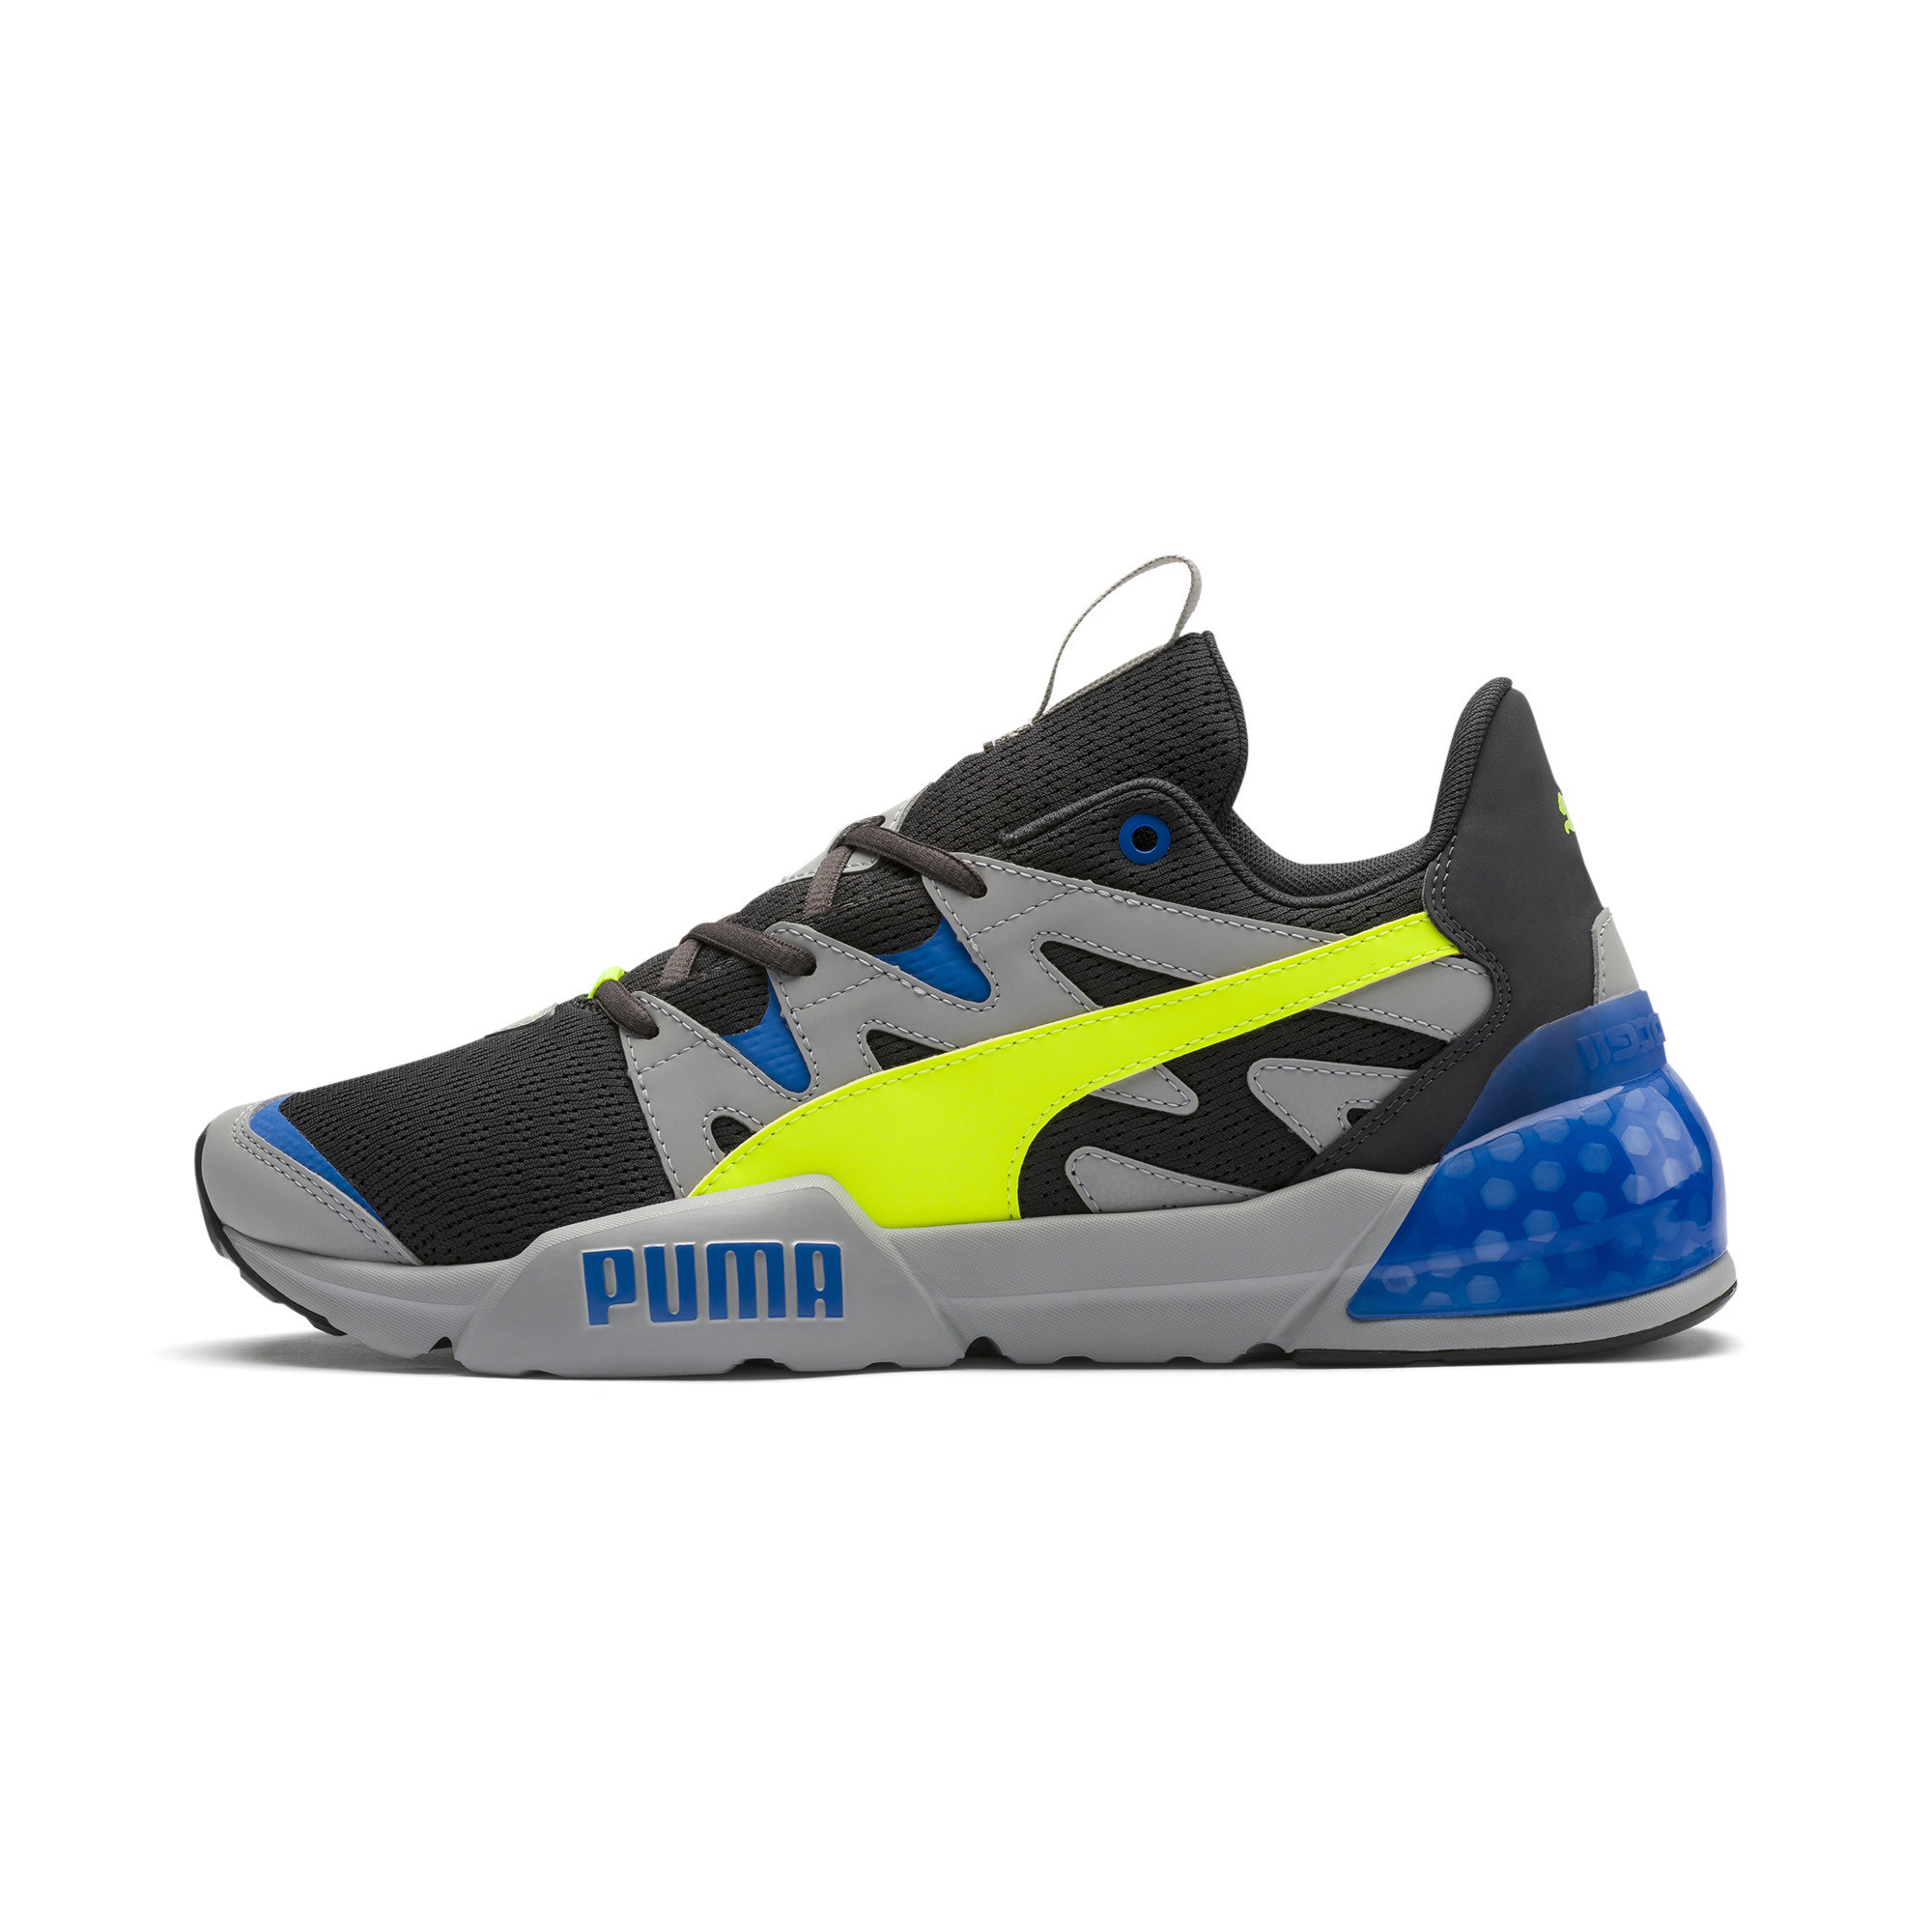 PUMA-Men-039-s-CELL-Pharos-Training-Shoes thumbnail 7